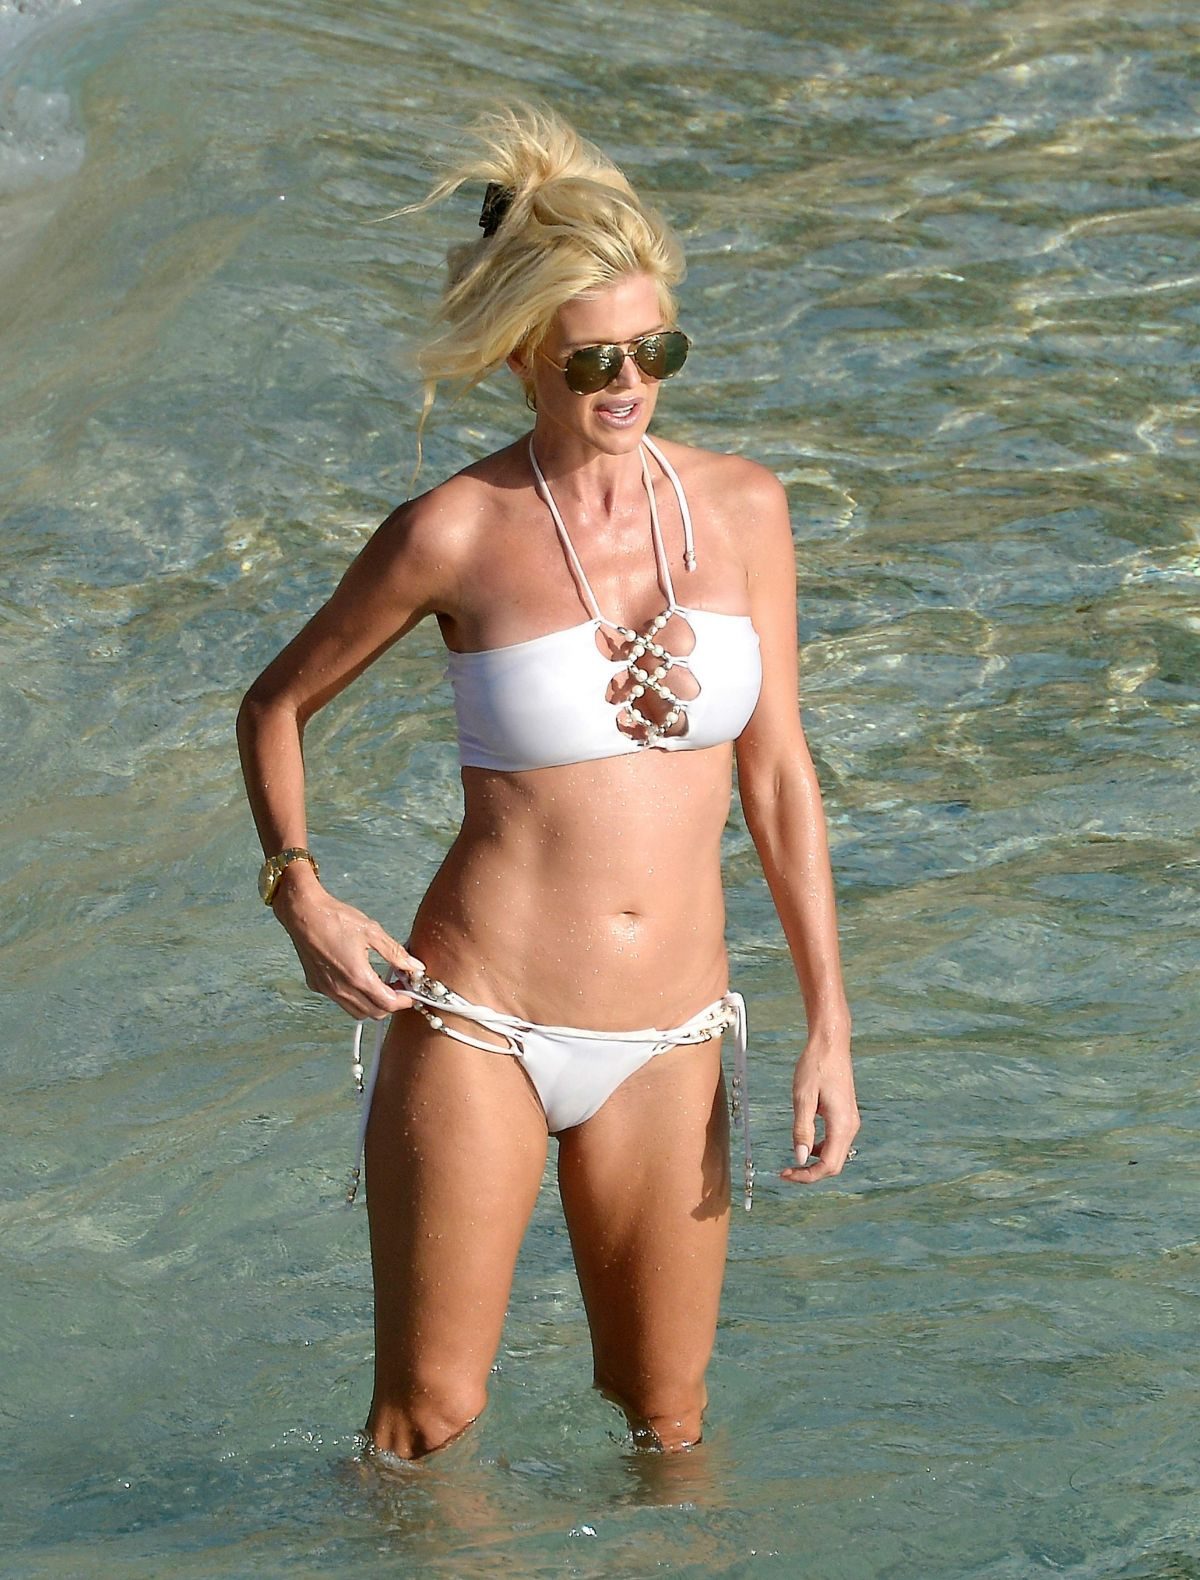 Victoria Silvstedt In ae bikini on the beach of St Barts